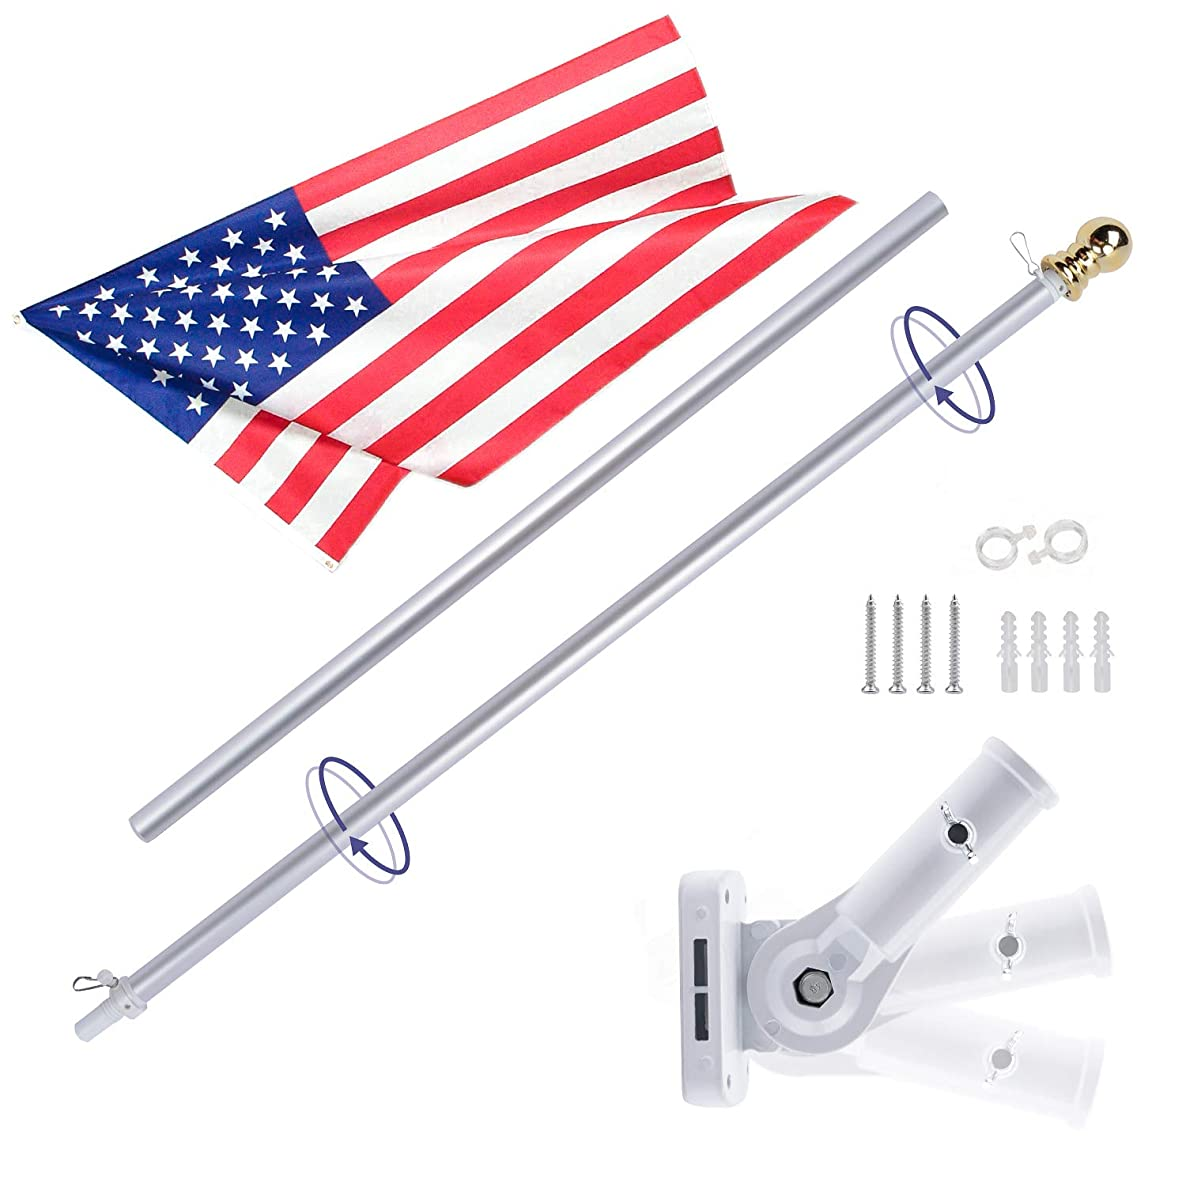 Gientan 5FT Aluminum Tangle Free Spinning Flag Pole Kit with US Flag, Premium Heavy Duty American Flagpole with Stainless Steel Clip & Free Metal Bracket for Residential House or Commercial, Silver